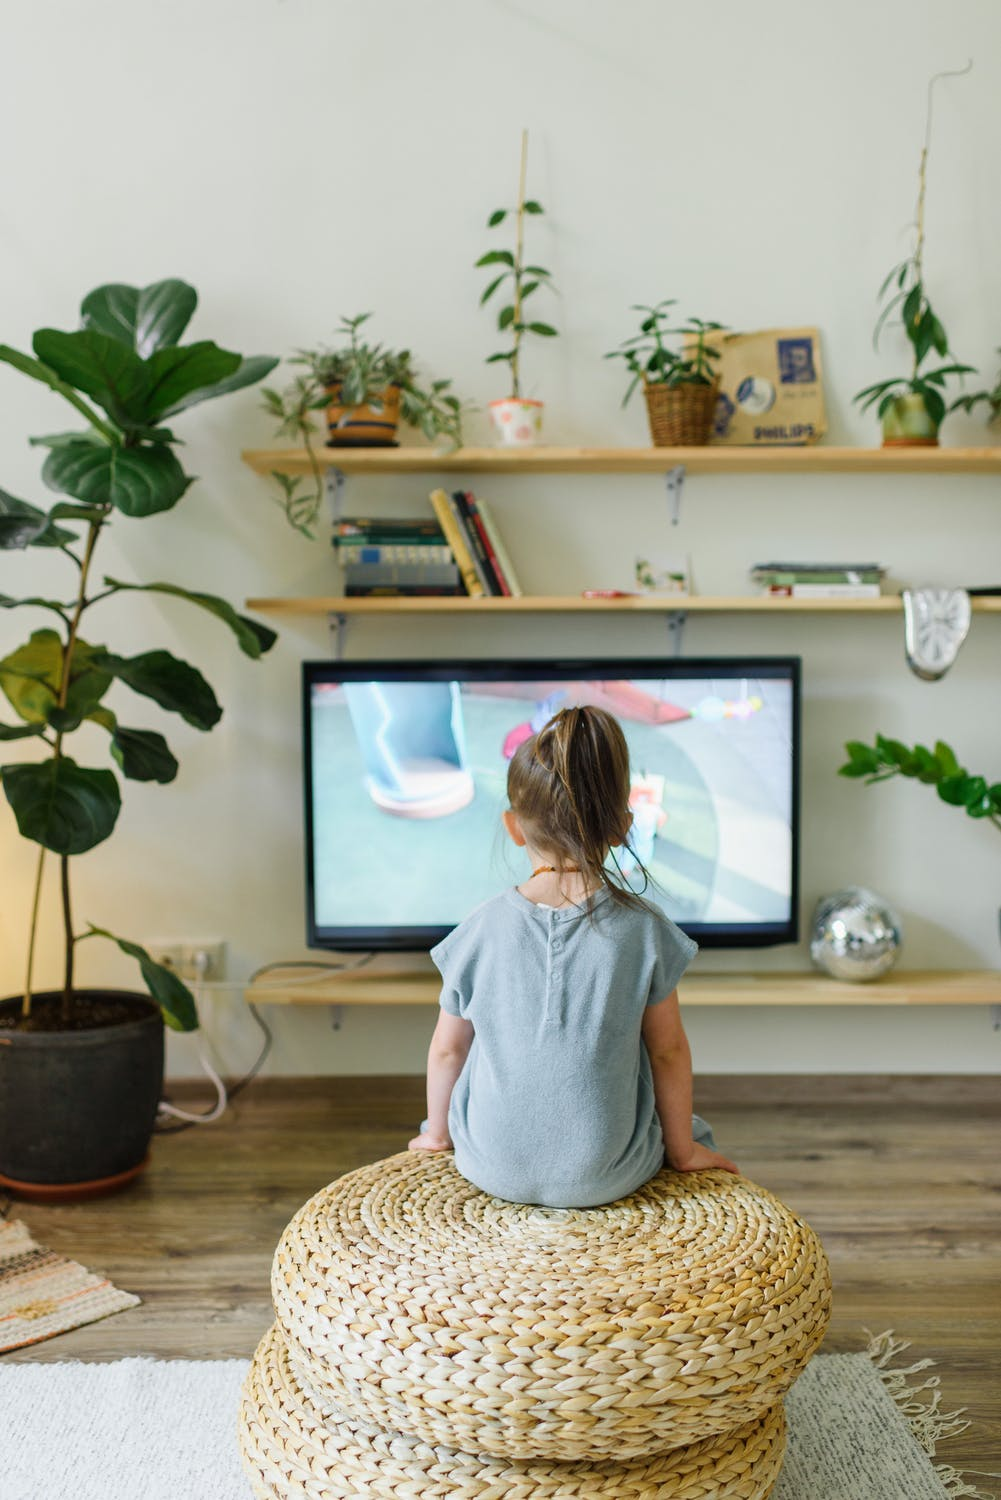 My daughters were watching TV after dinner   Source: Pexels